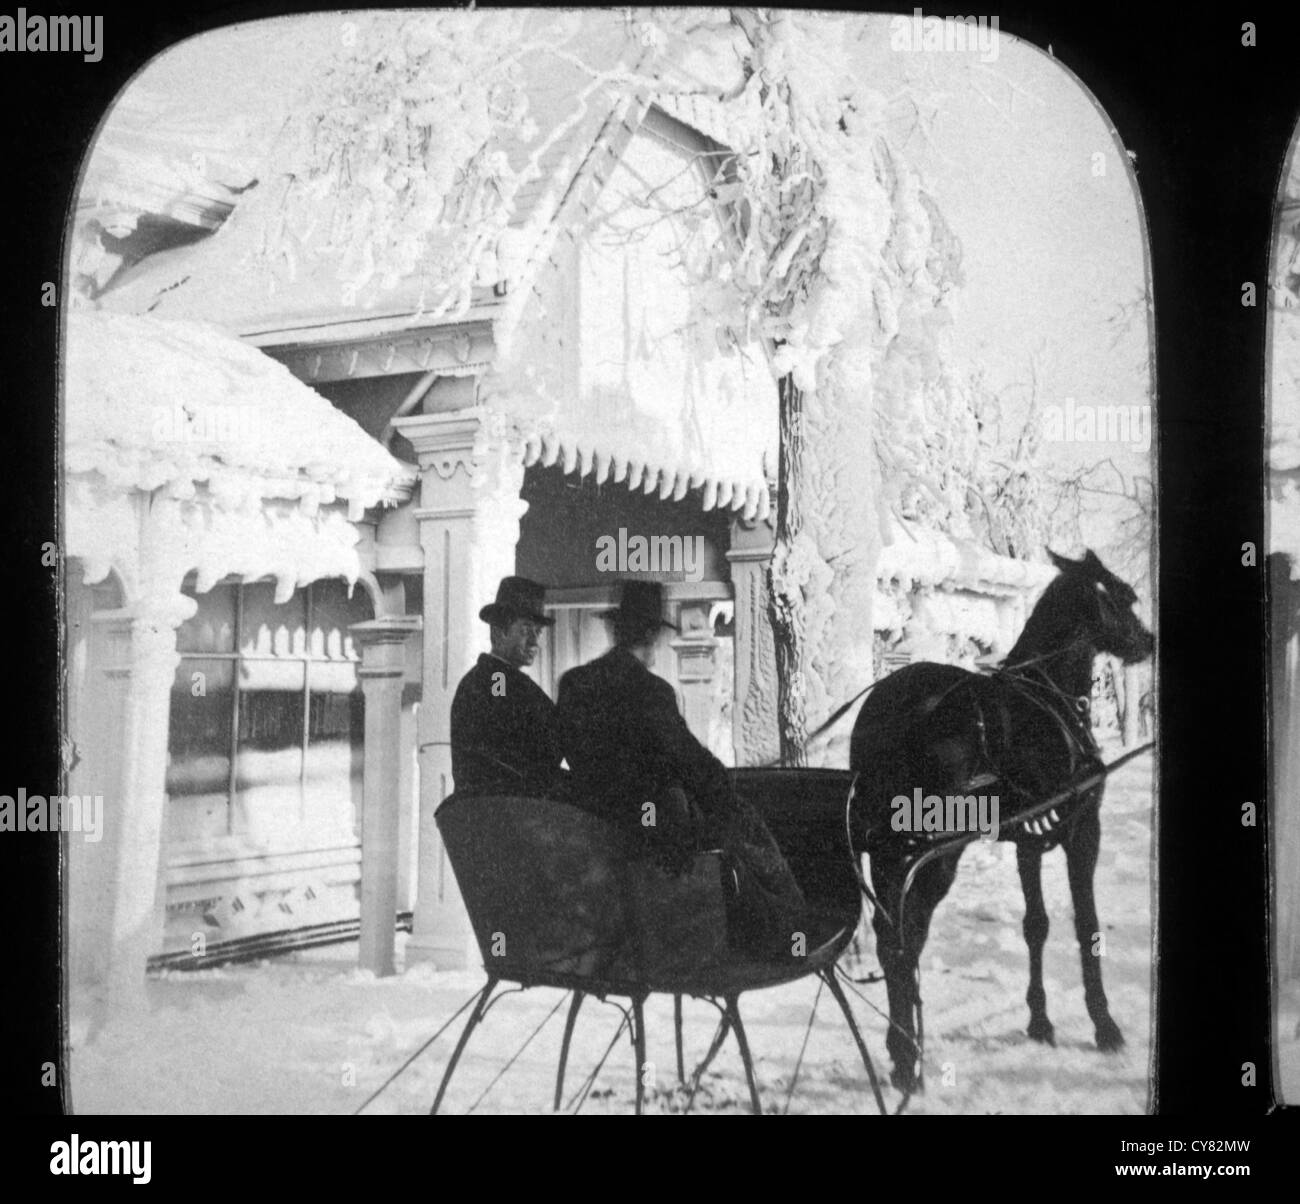 Two People Riding in Horse-Drawn Sleigh, Stereo Photograph, Circa 1900 Stock Photo